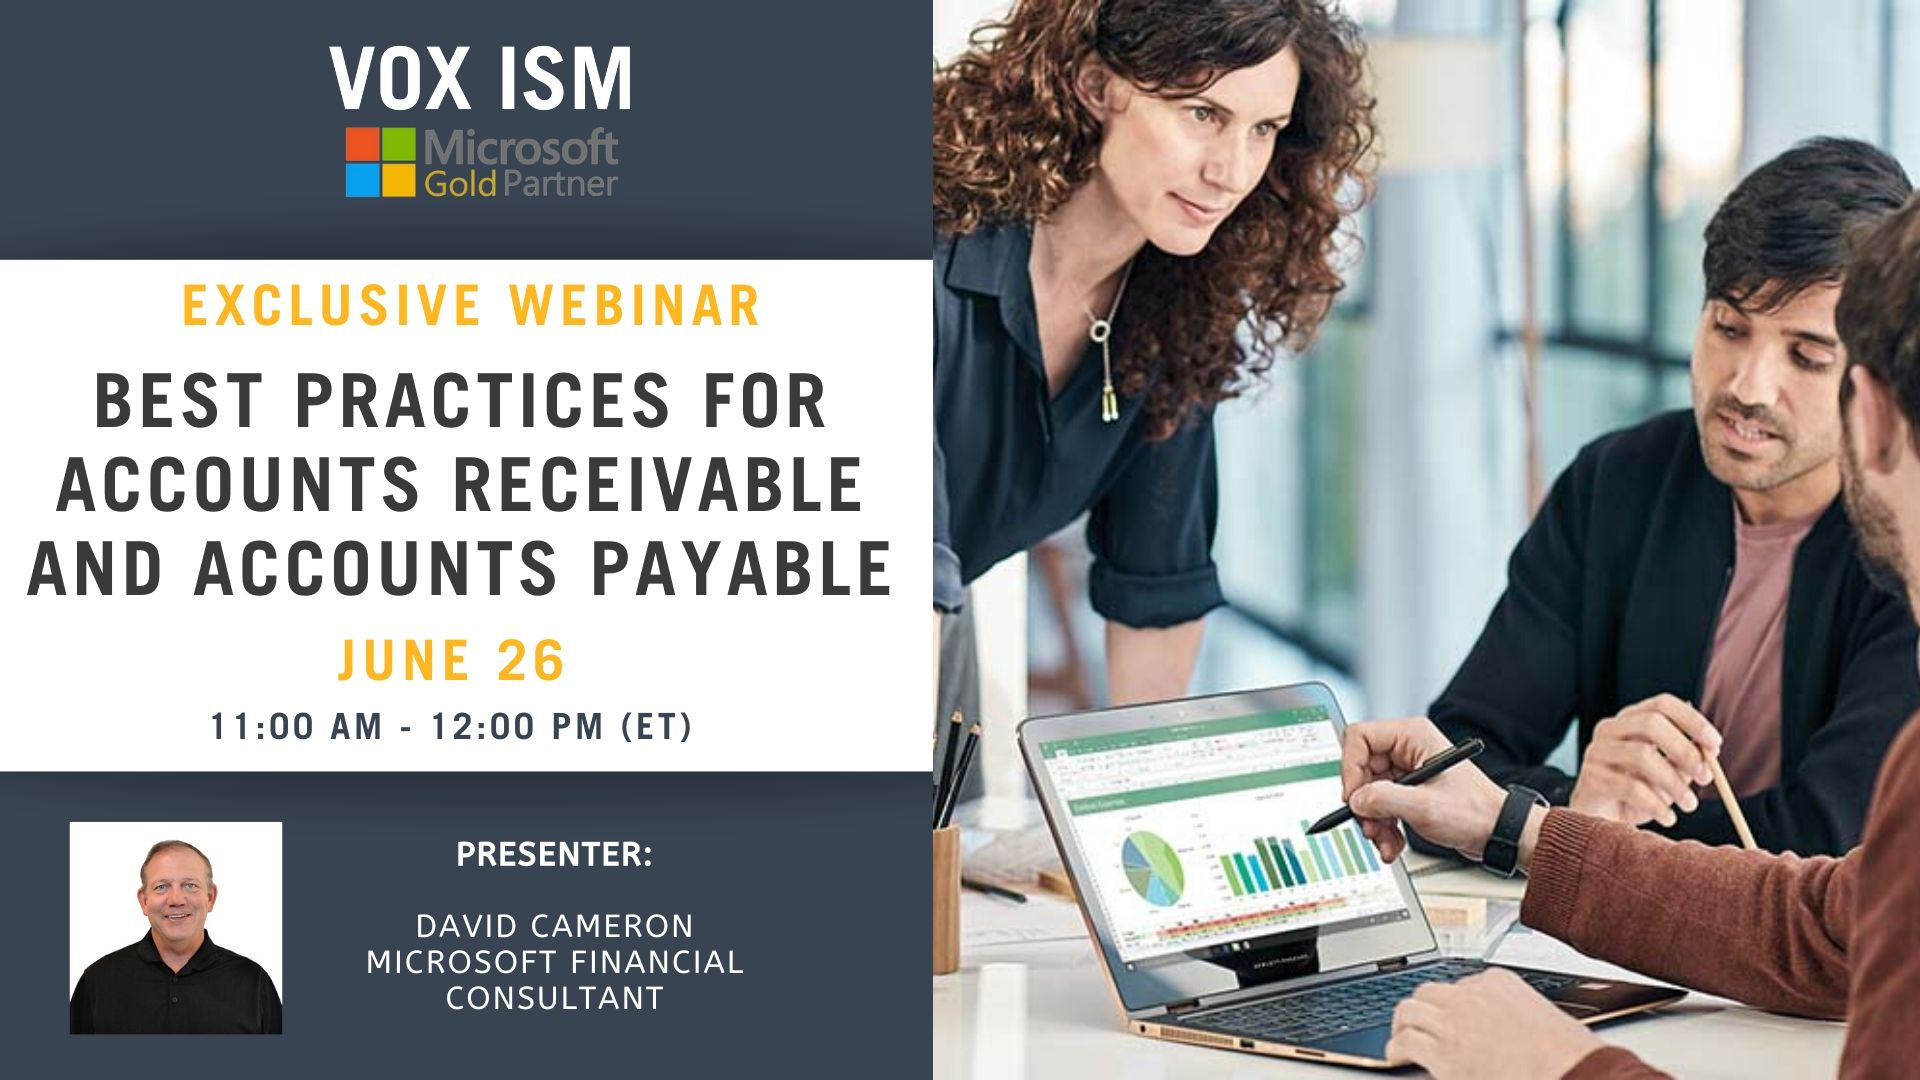 Best Practices for Accounts Receivable and Accounts Payable - June 26 - Webinar